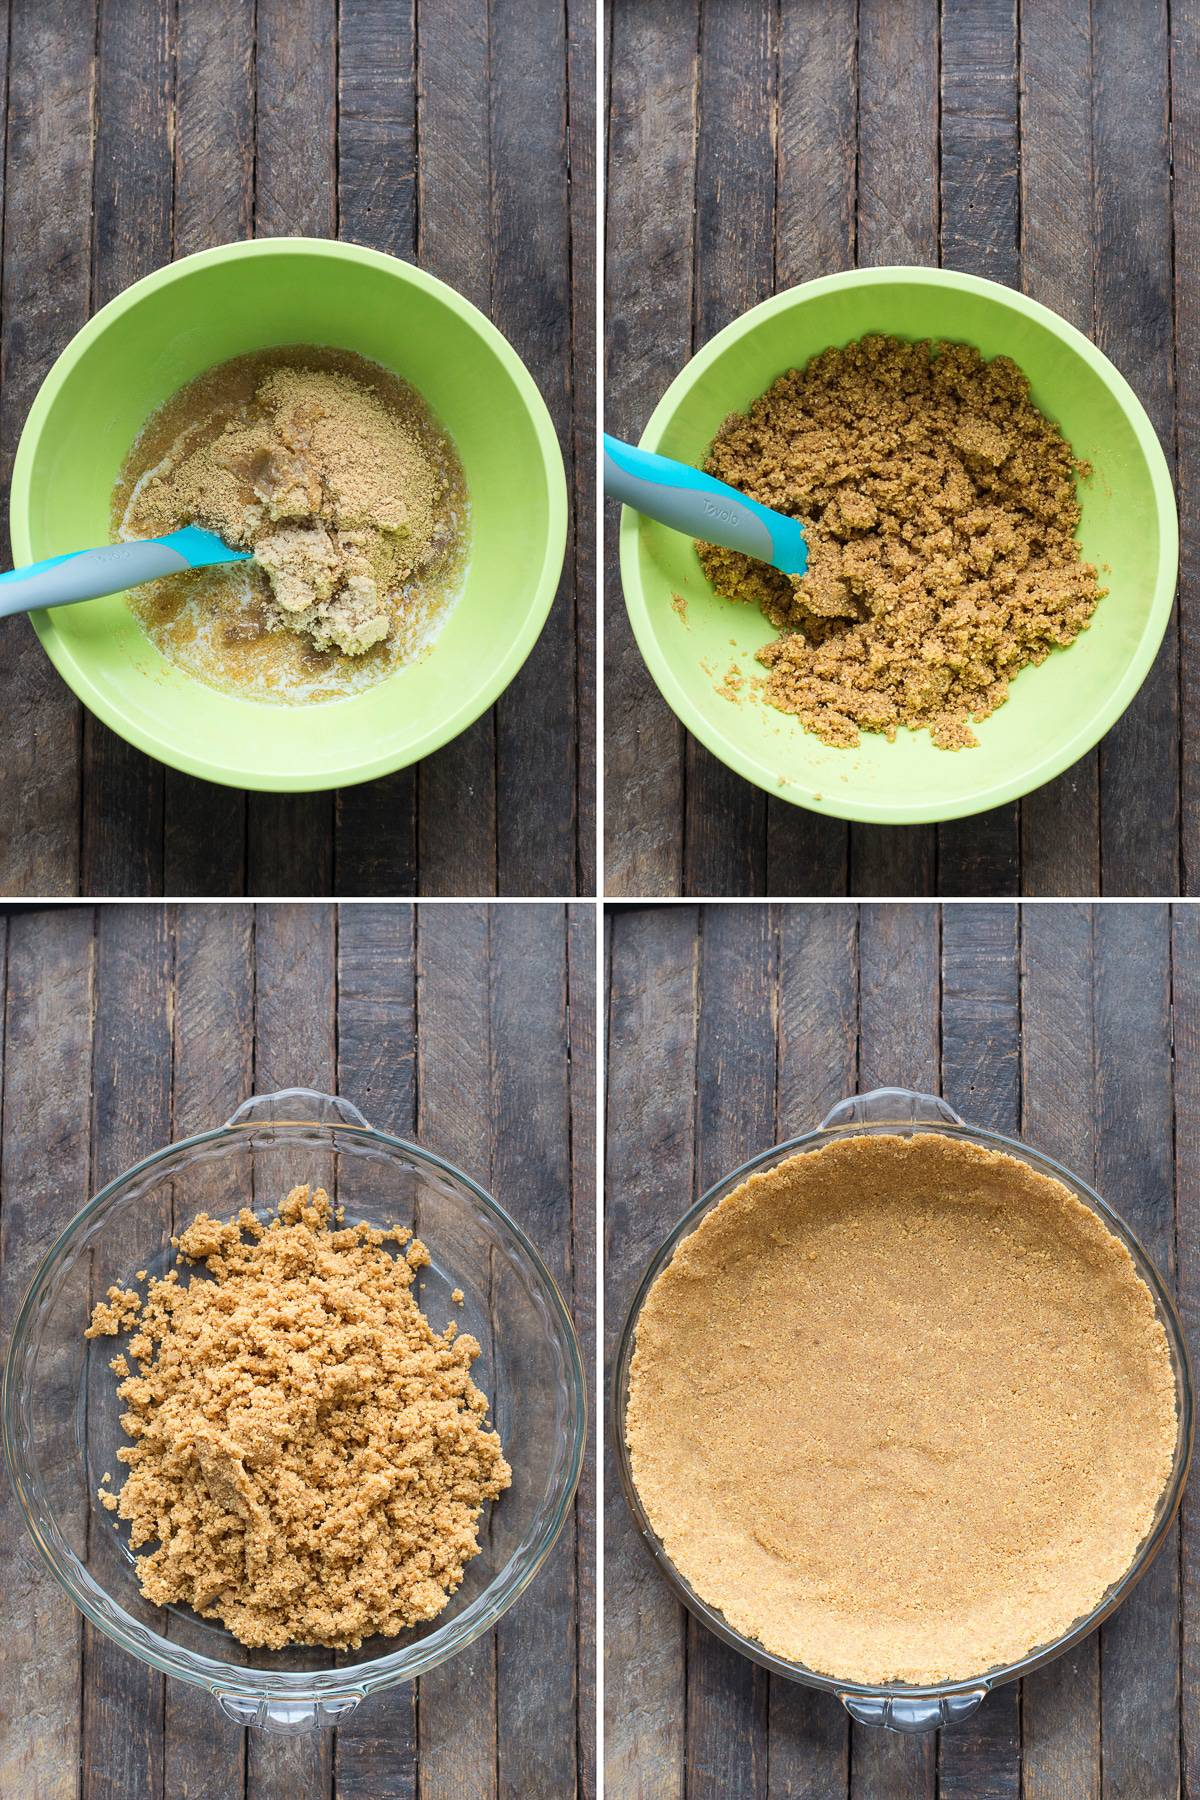 Homemade graham cracker crust - 3 ingredients!